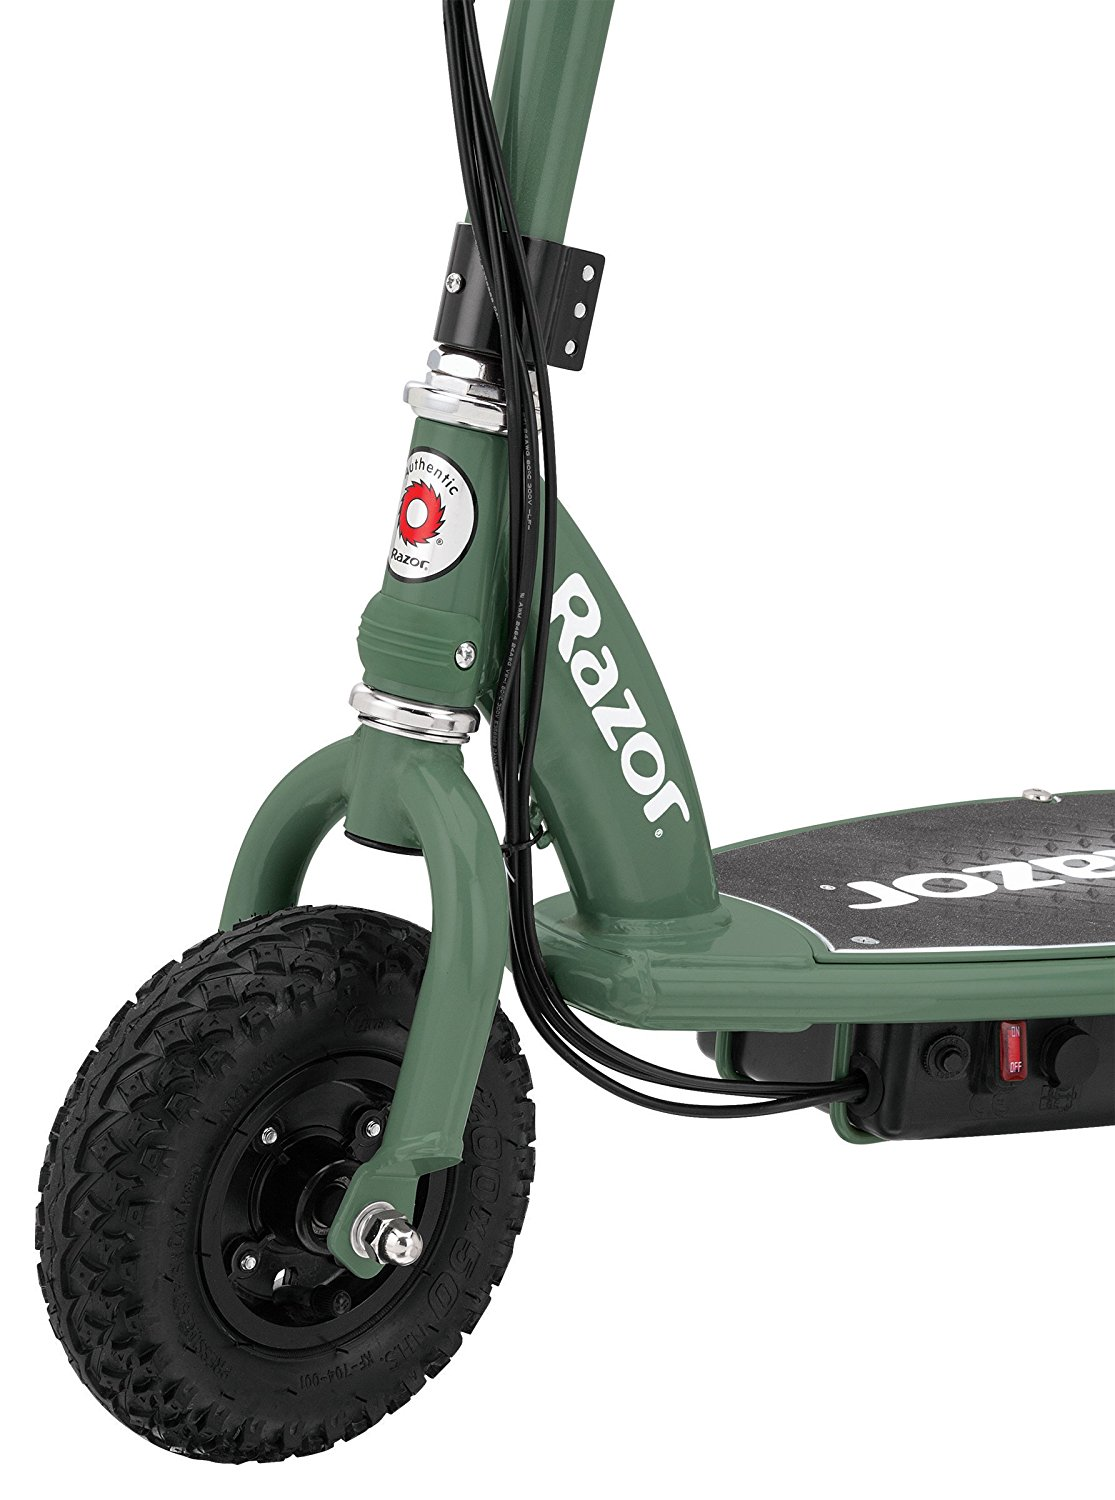 RX 200 Off Road Scooter Review